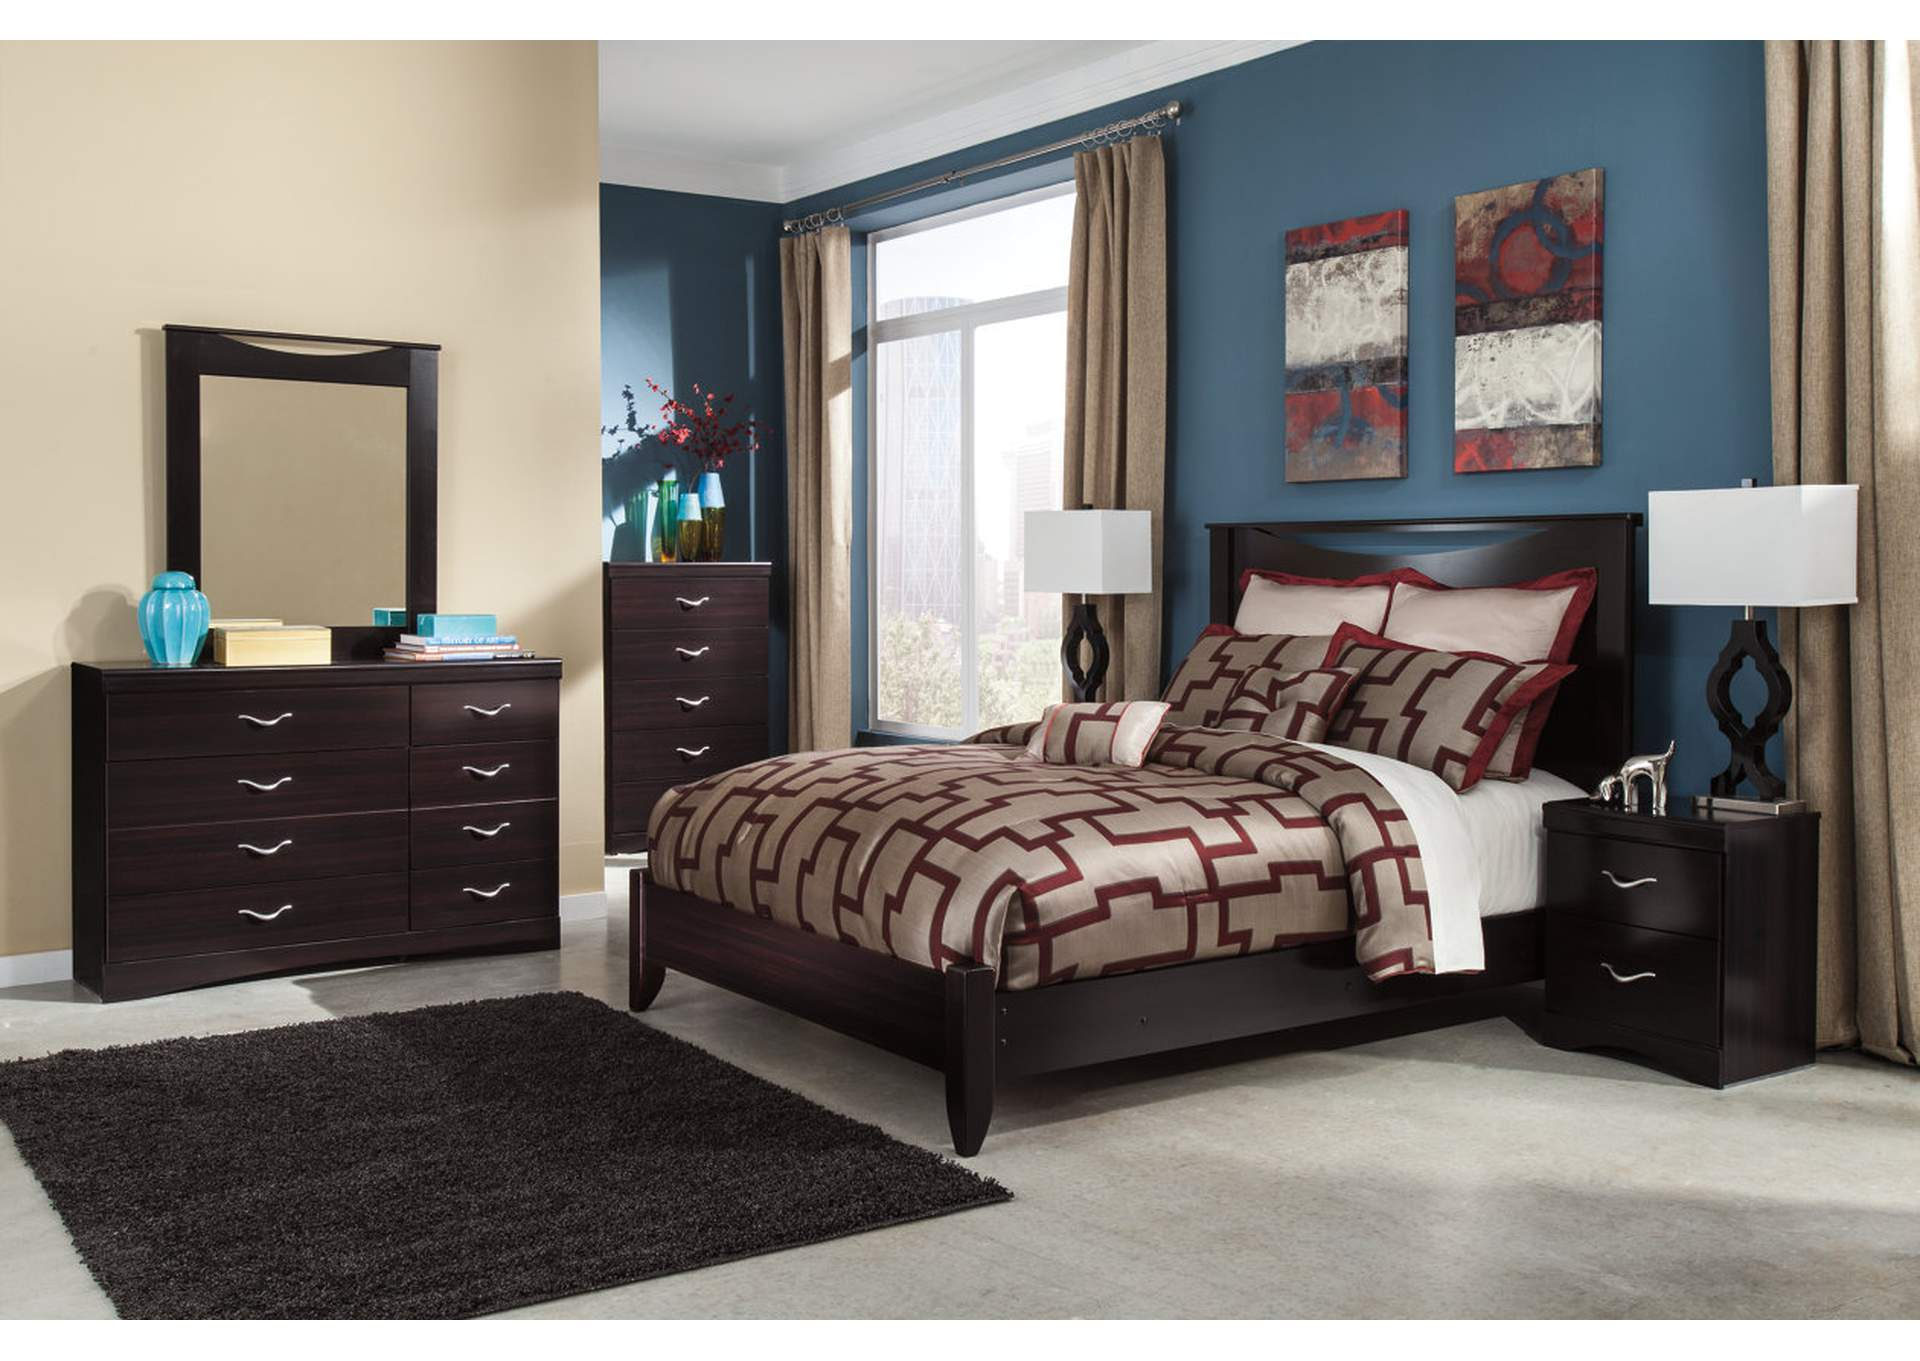 Zanbury King Panel Bed w/Dresser, Mirror, Drawer Chest & Nightstand,Signature Design By Ashley